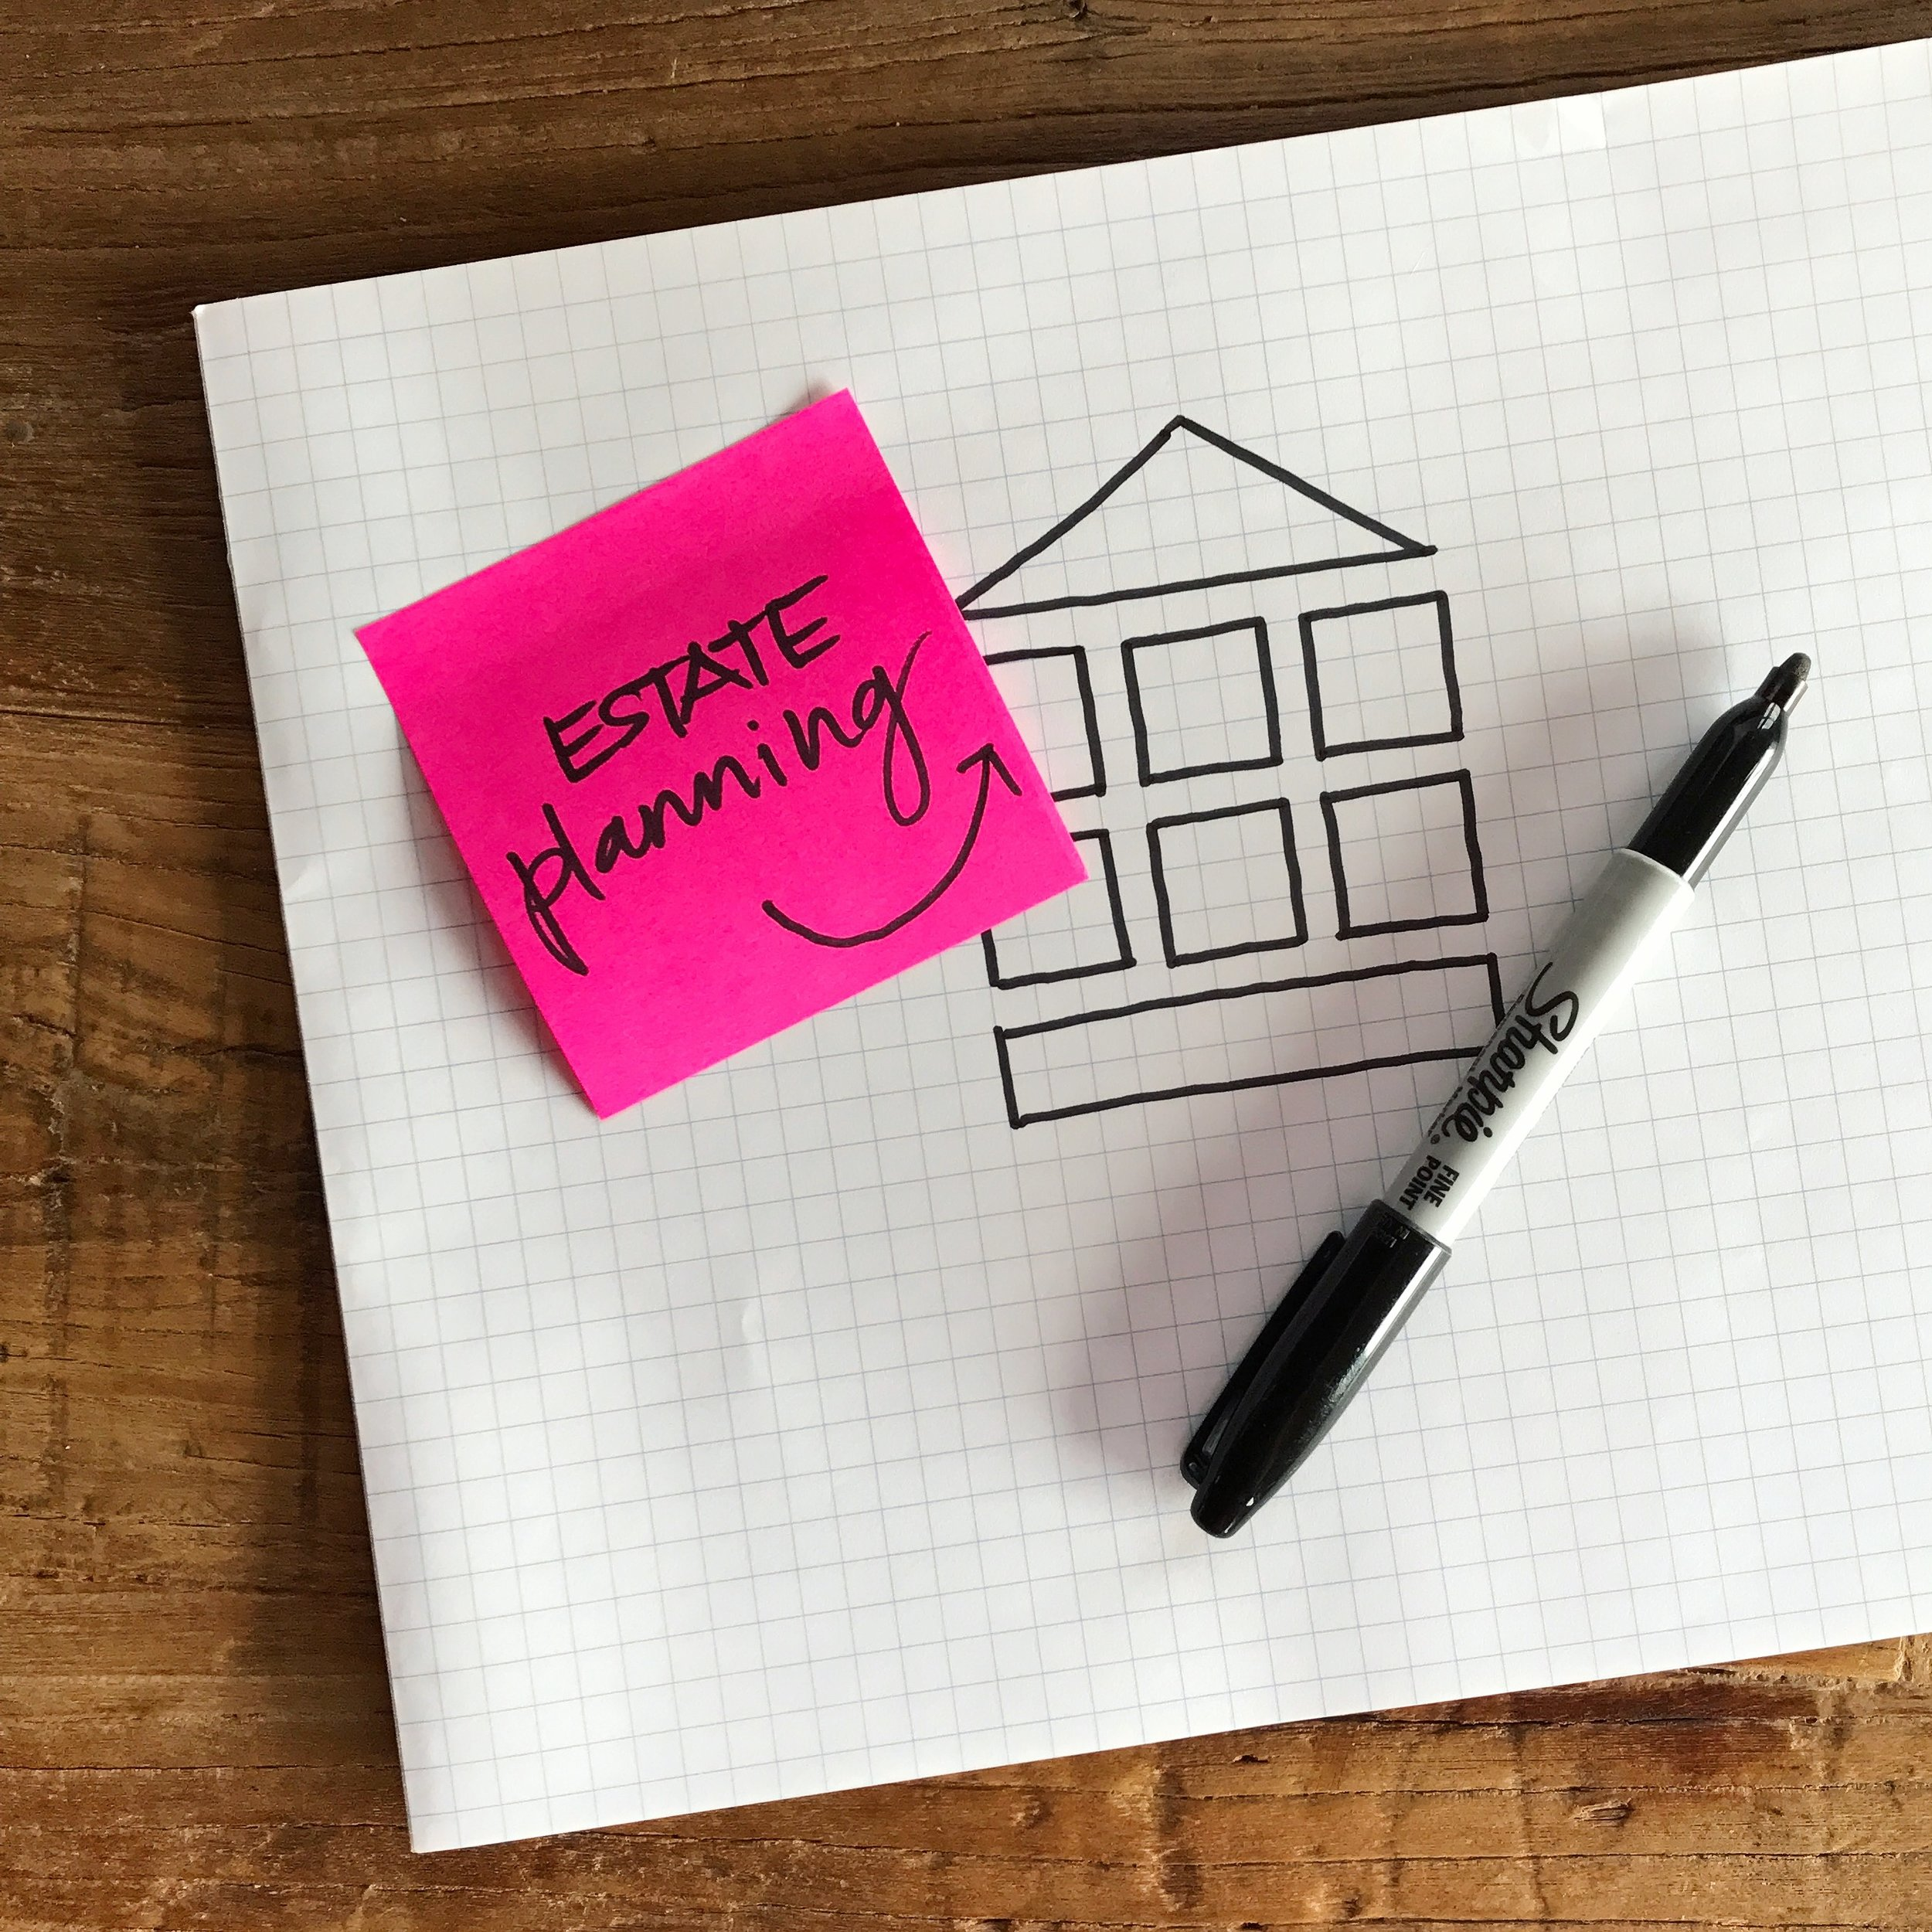 Estate Planning   Good estate planning accomplishes two things.  1) It makes sure all of the stuff you've worked for, grown, and accumulated, goes where you want it to go in the event that you're not here tomorrow.   2) It makes sure all of the stuff you've worked for, grown, and accumulated, goes where you want it to go in the event that you're here tomorrow but incapacitated.